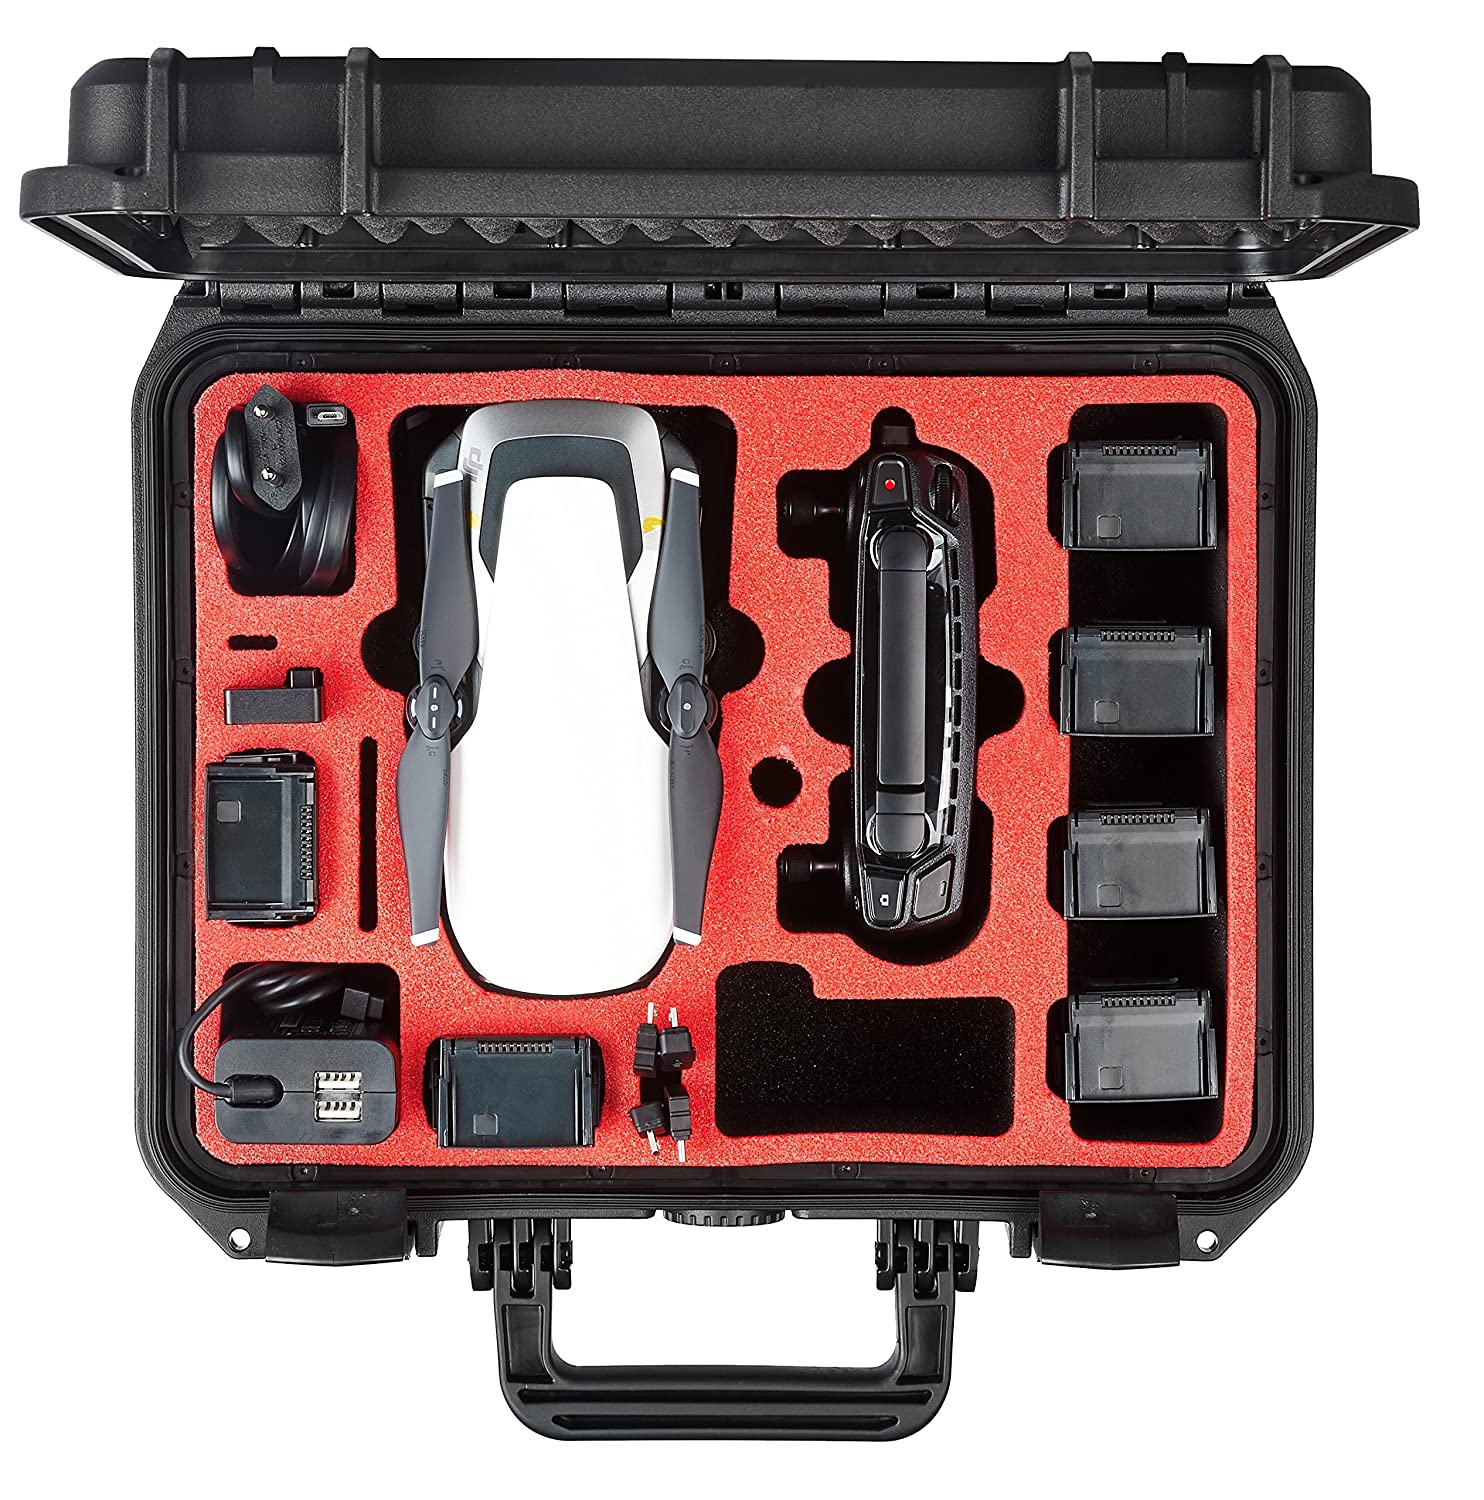 Explorer Edition Professional suitcase carry case Explorer Edition  fits for the DJI Mavic Air with space for up to 8 batteries and the complete range of accessories  Made in Germany  5 year warranty